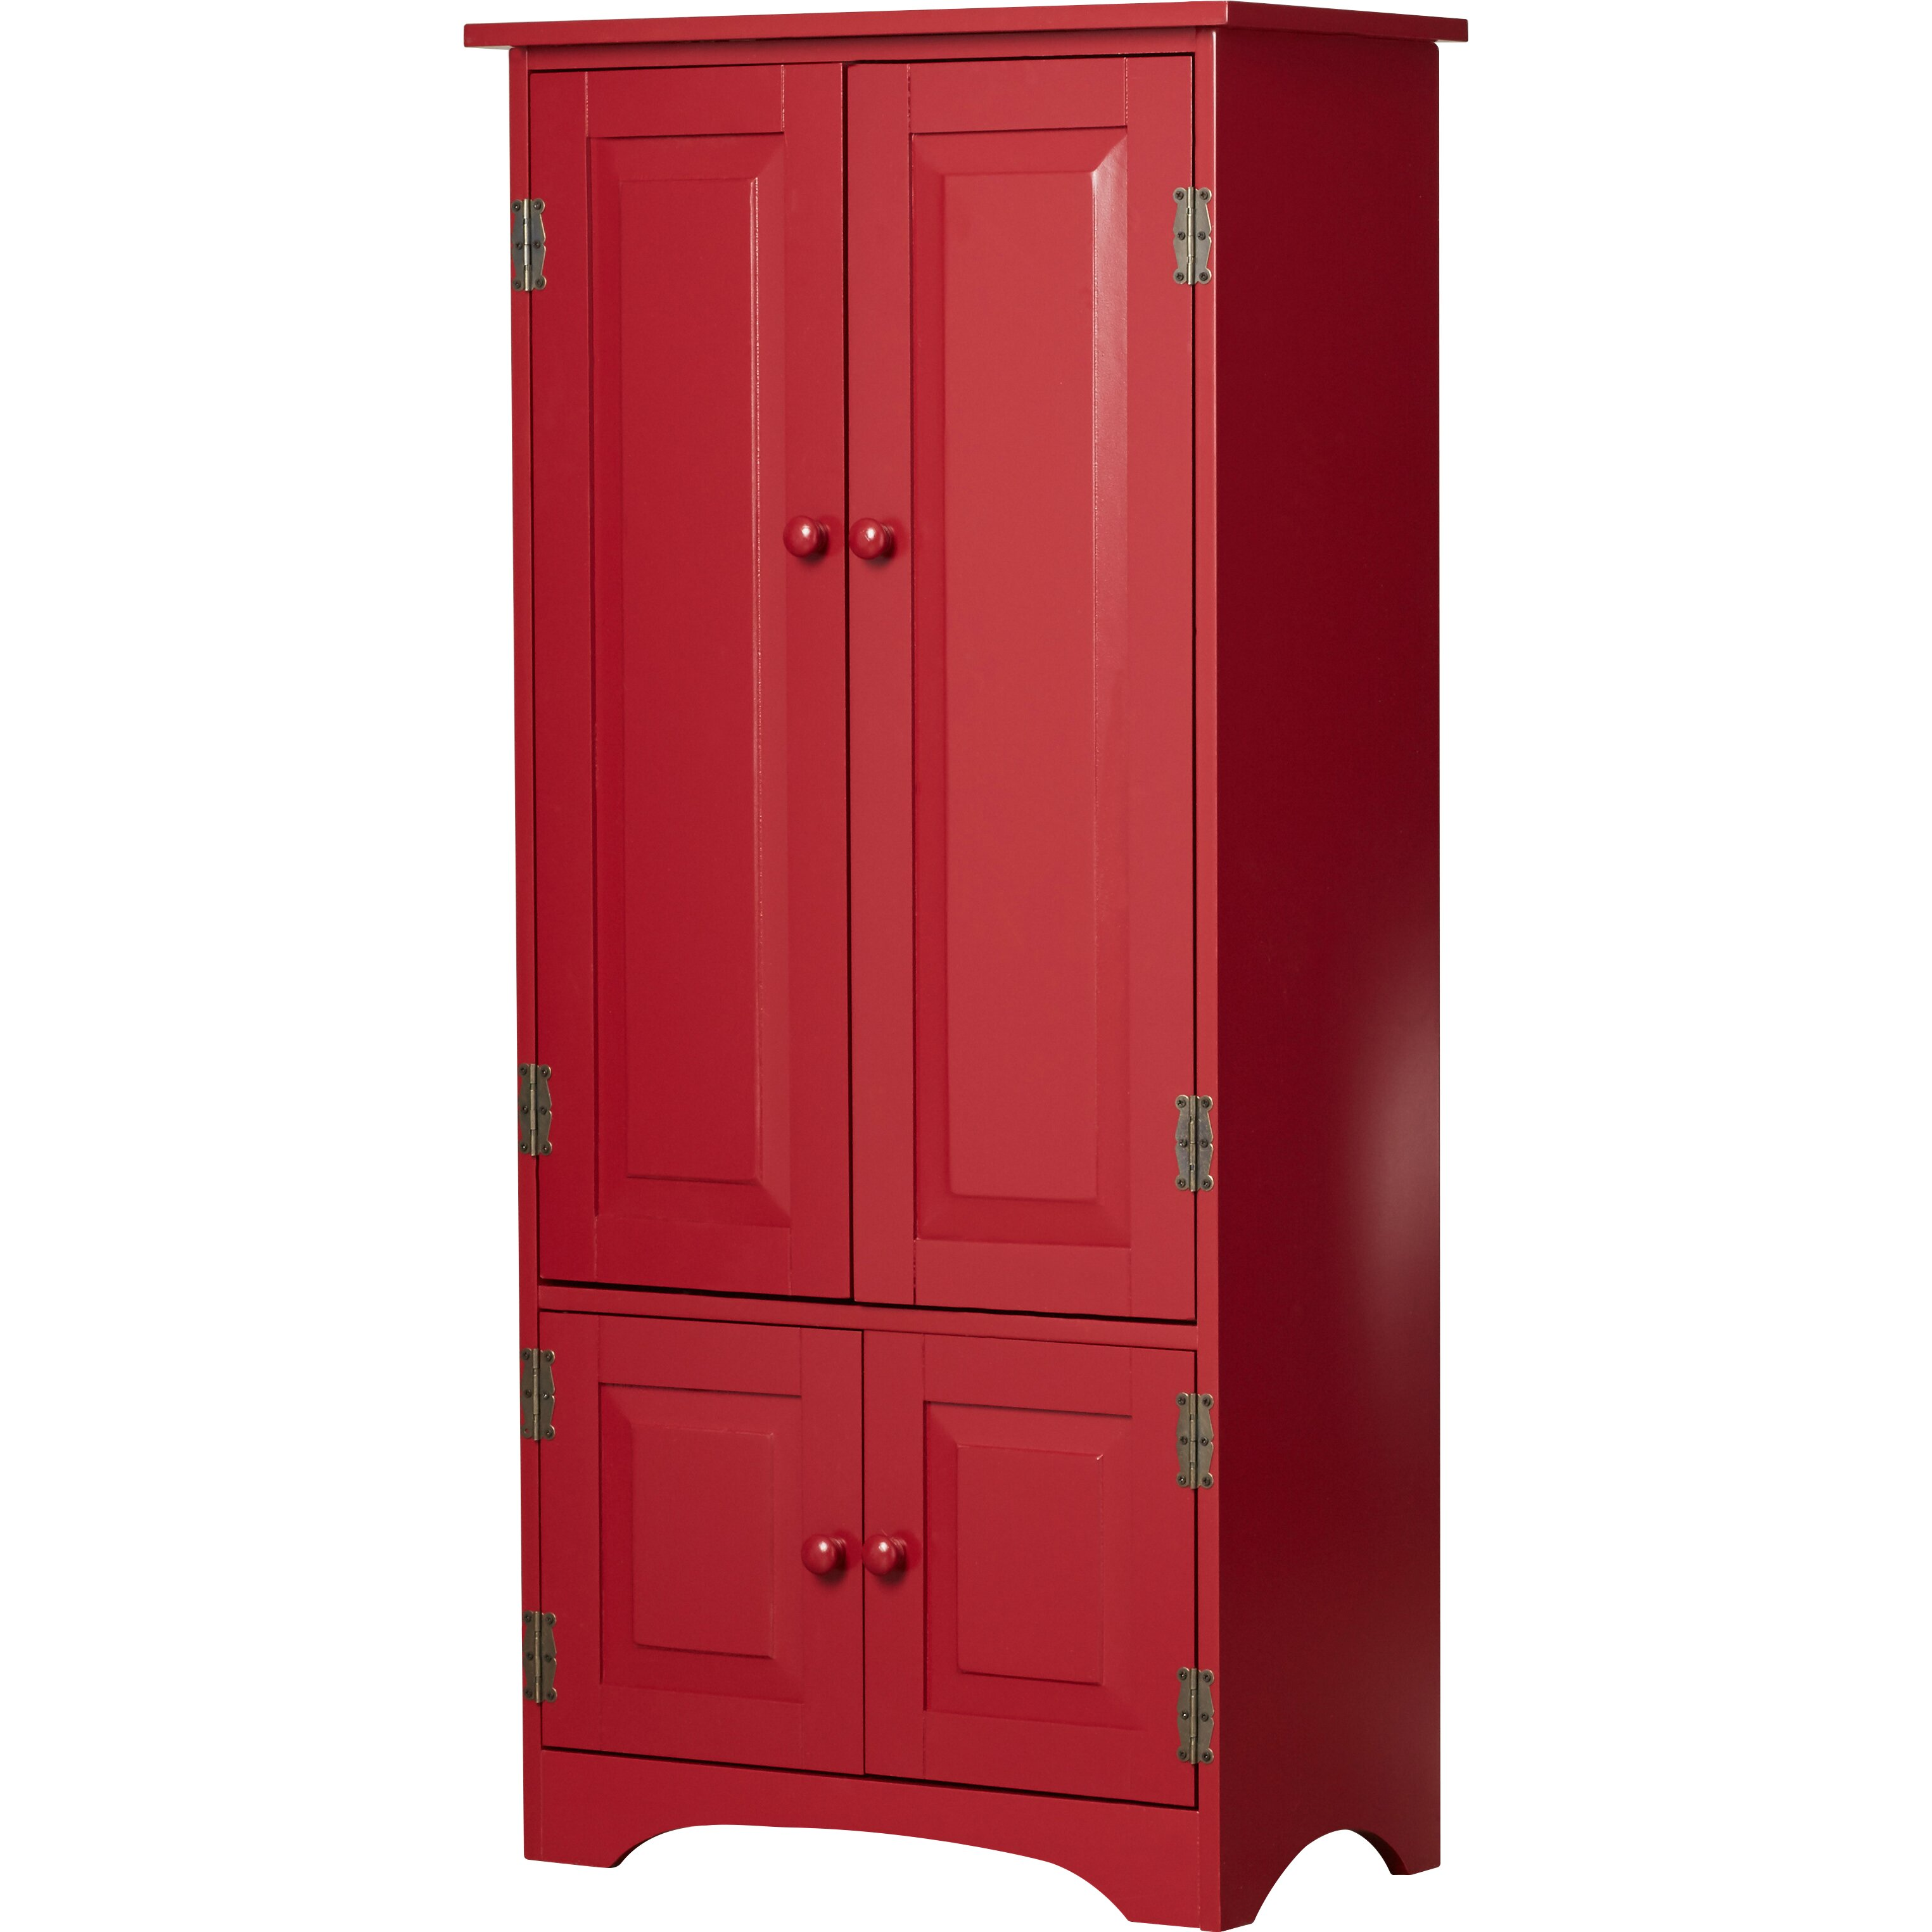 Charlton home hadleigh tall 2 door cabinet reviews wayfair for One day doors and closets reviews